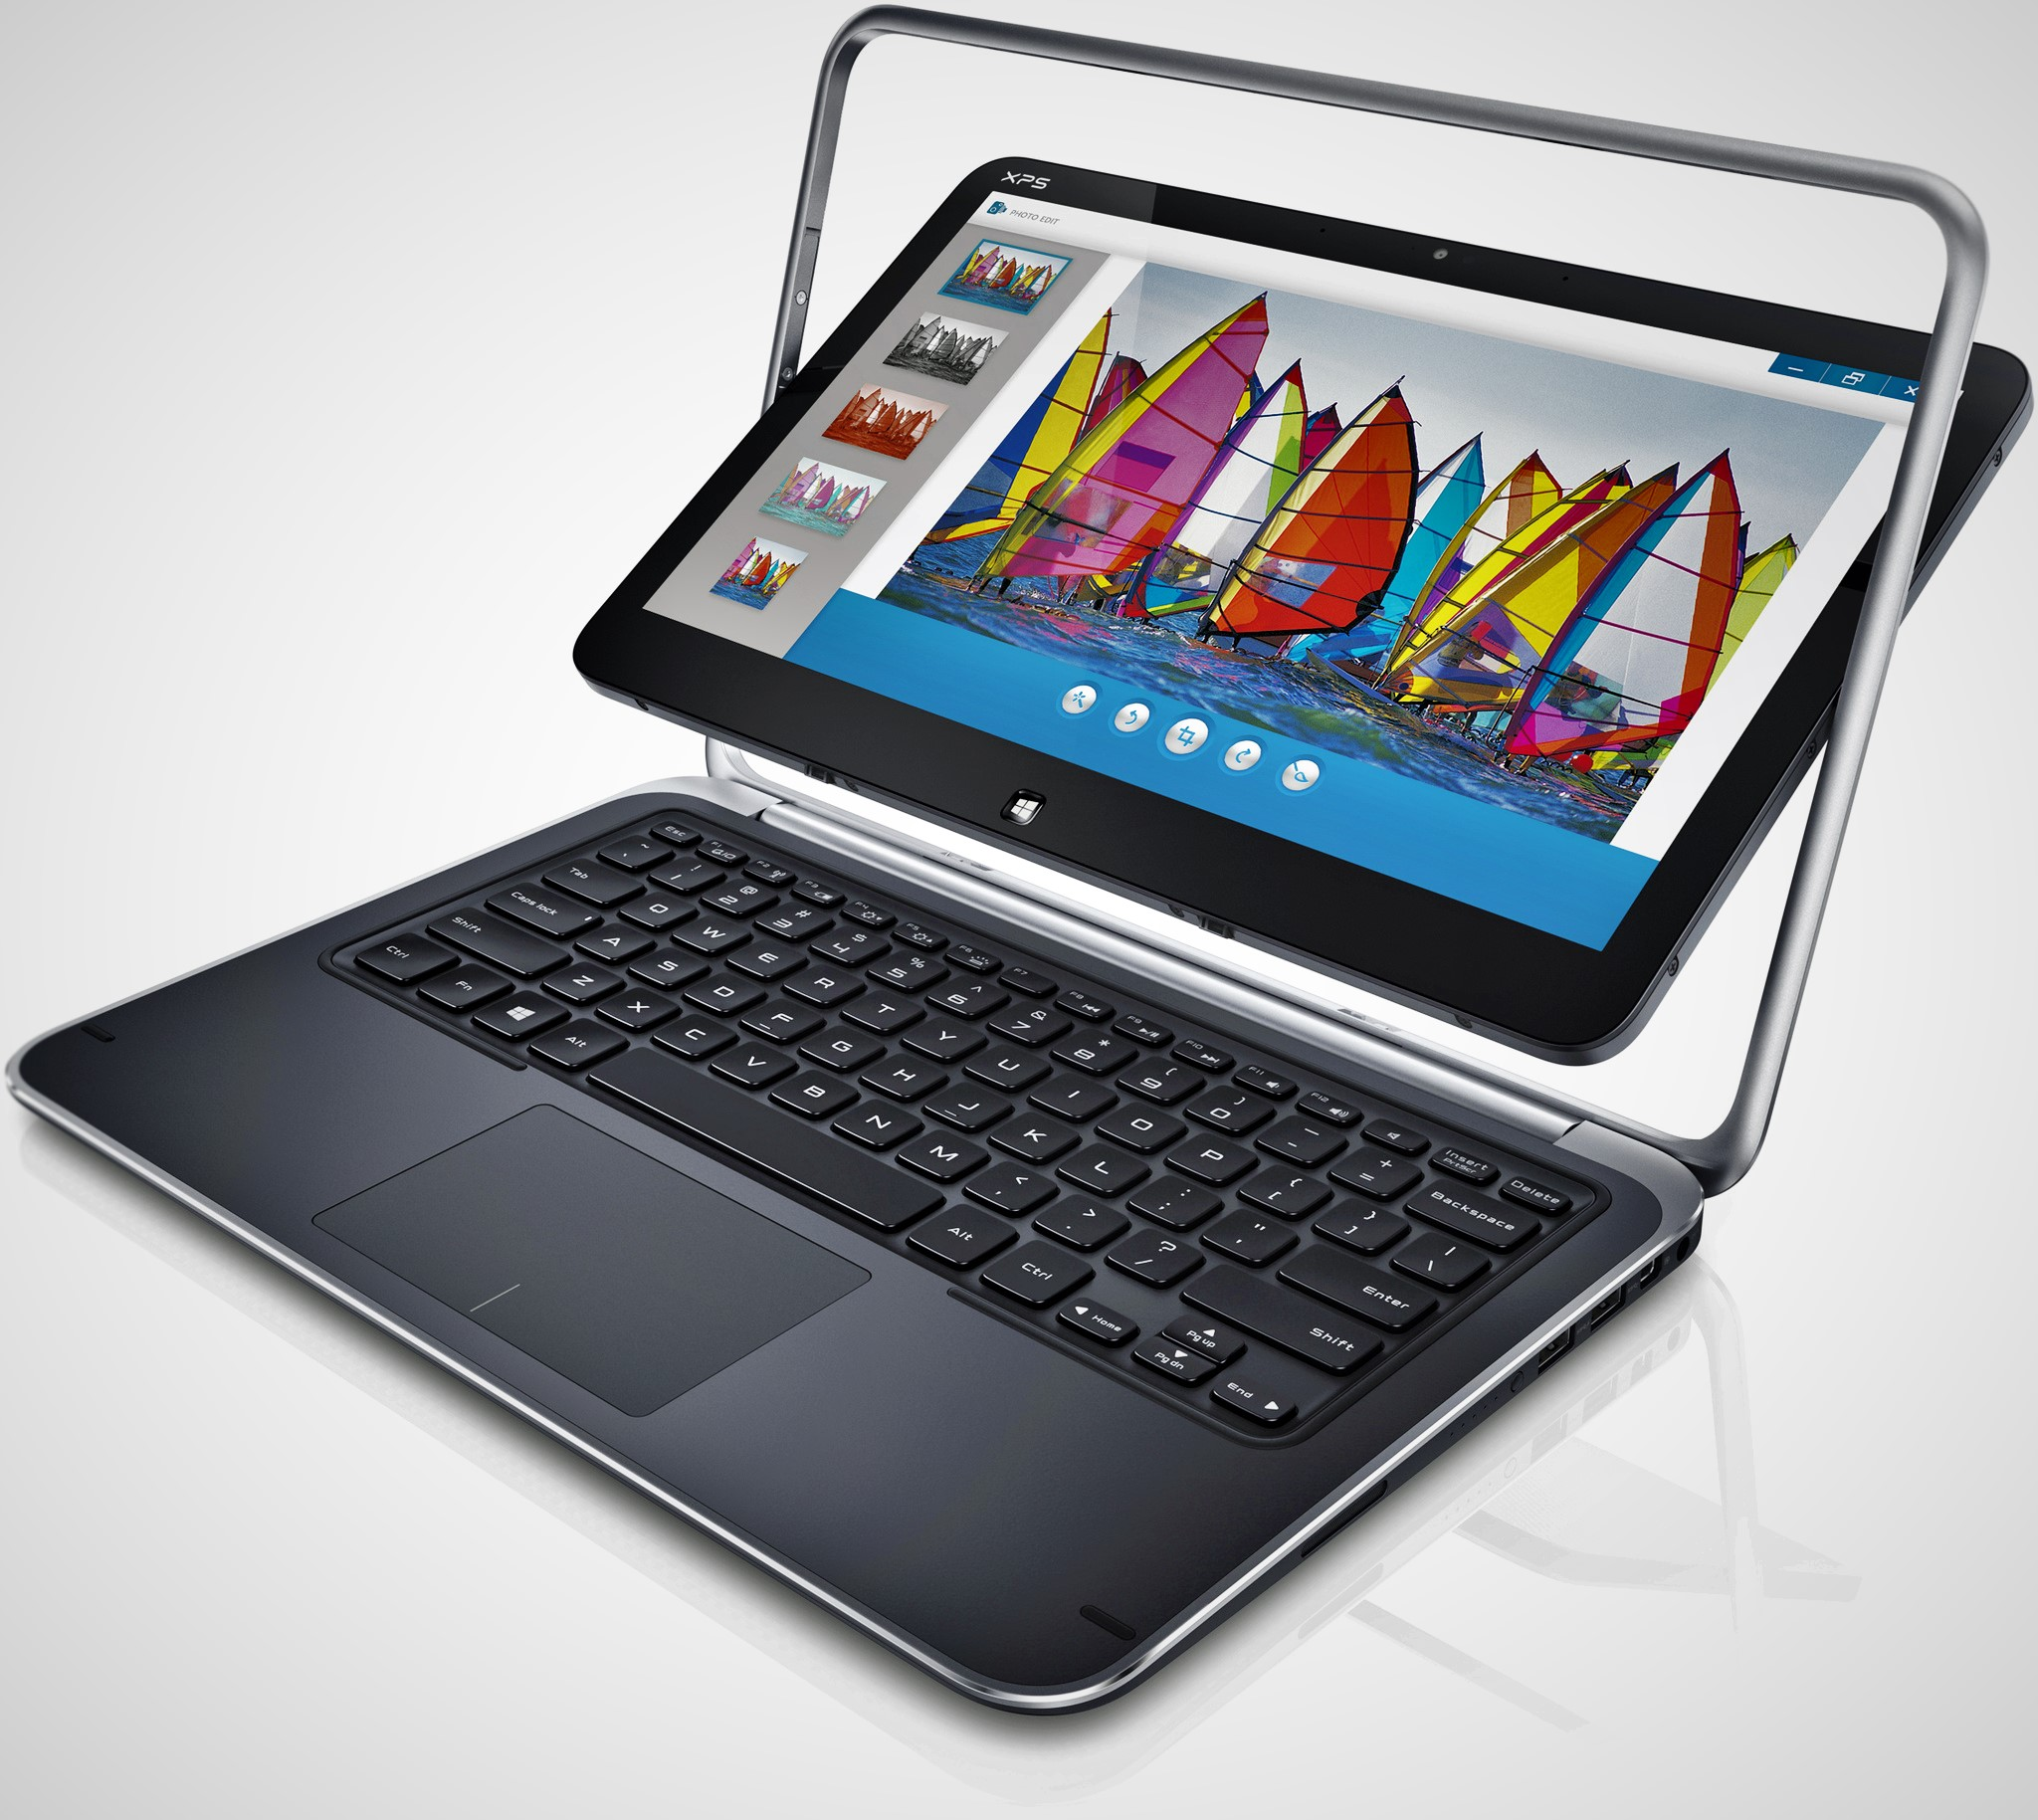 Dell XPS 12 – World's First 2-in-1 4K Convertible PC